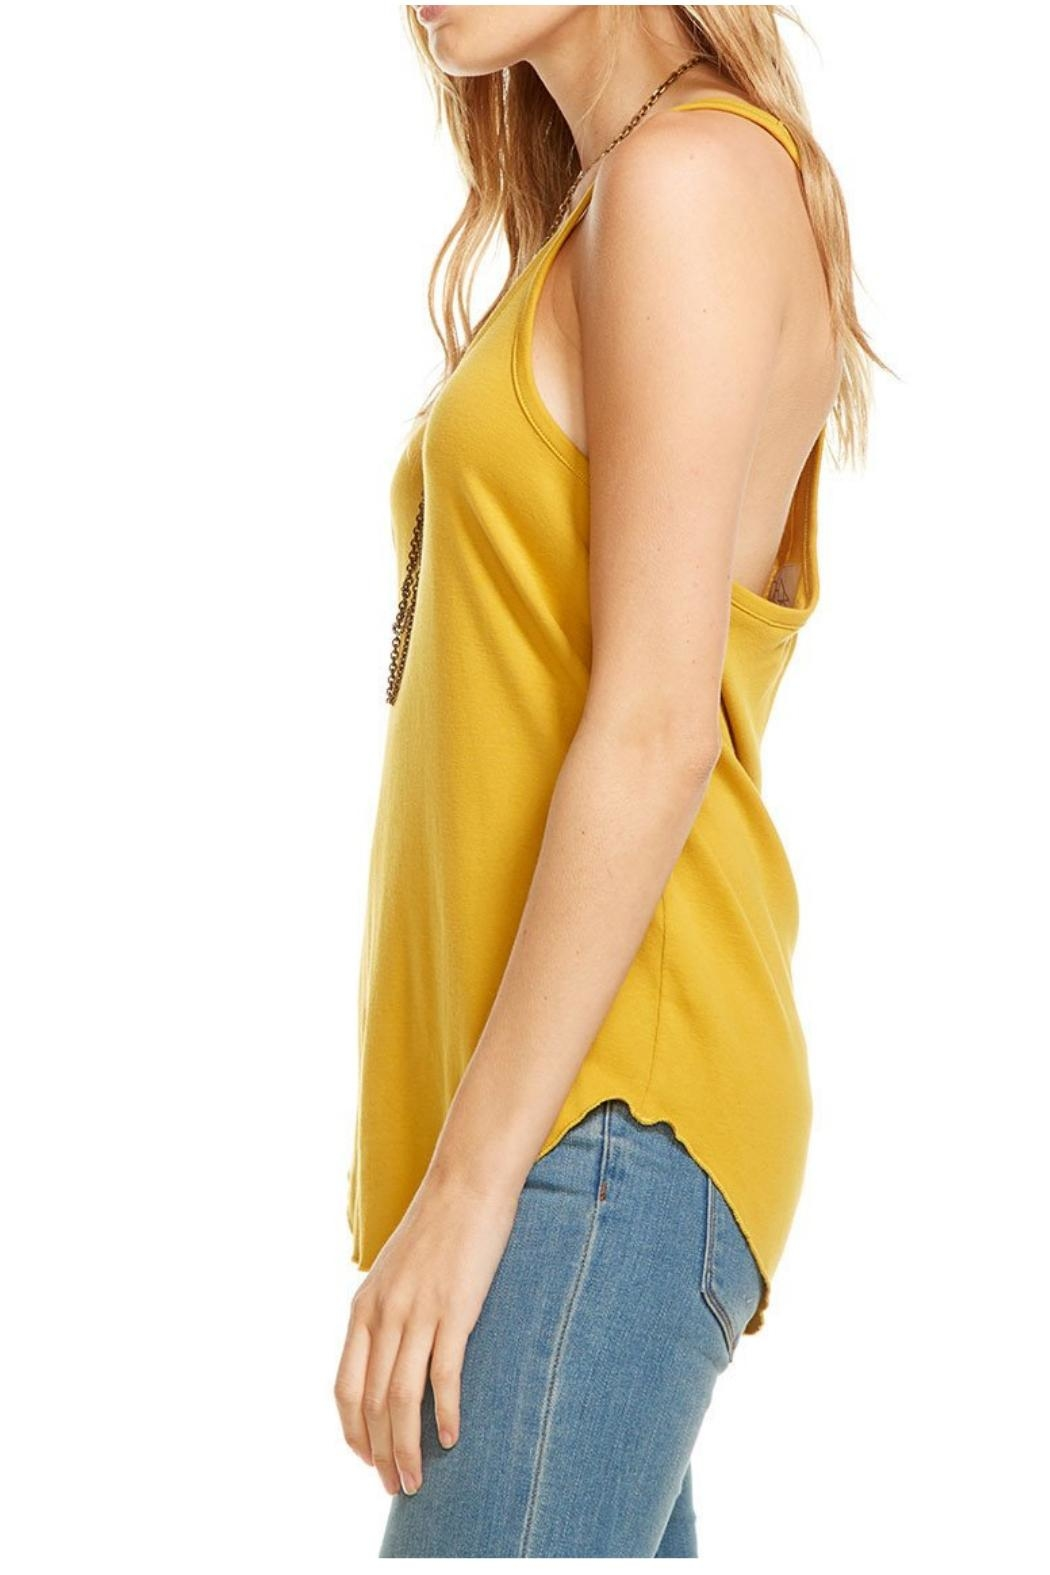 Chaser Yellow Tank Top - Front Full Image